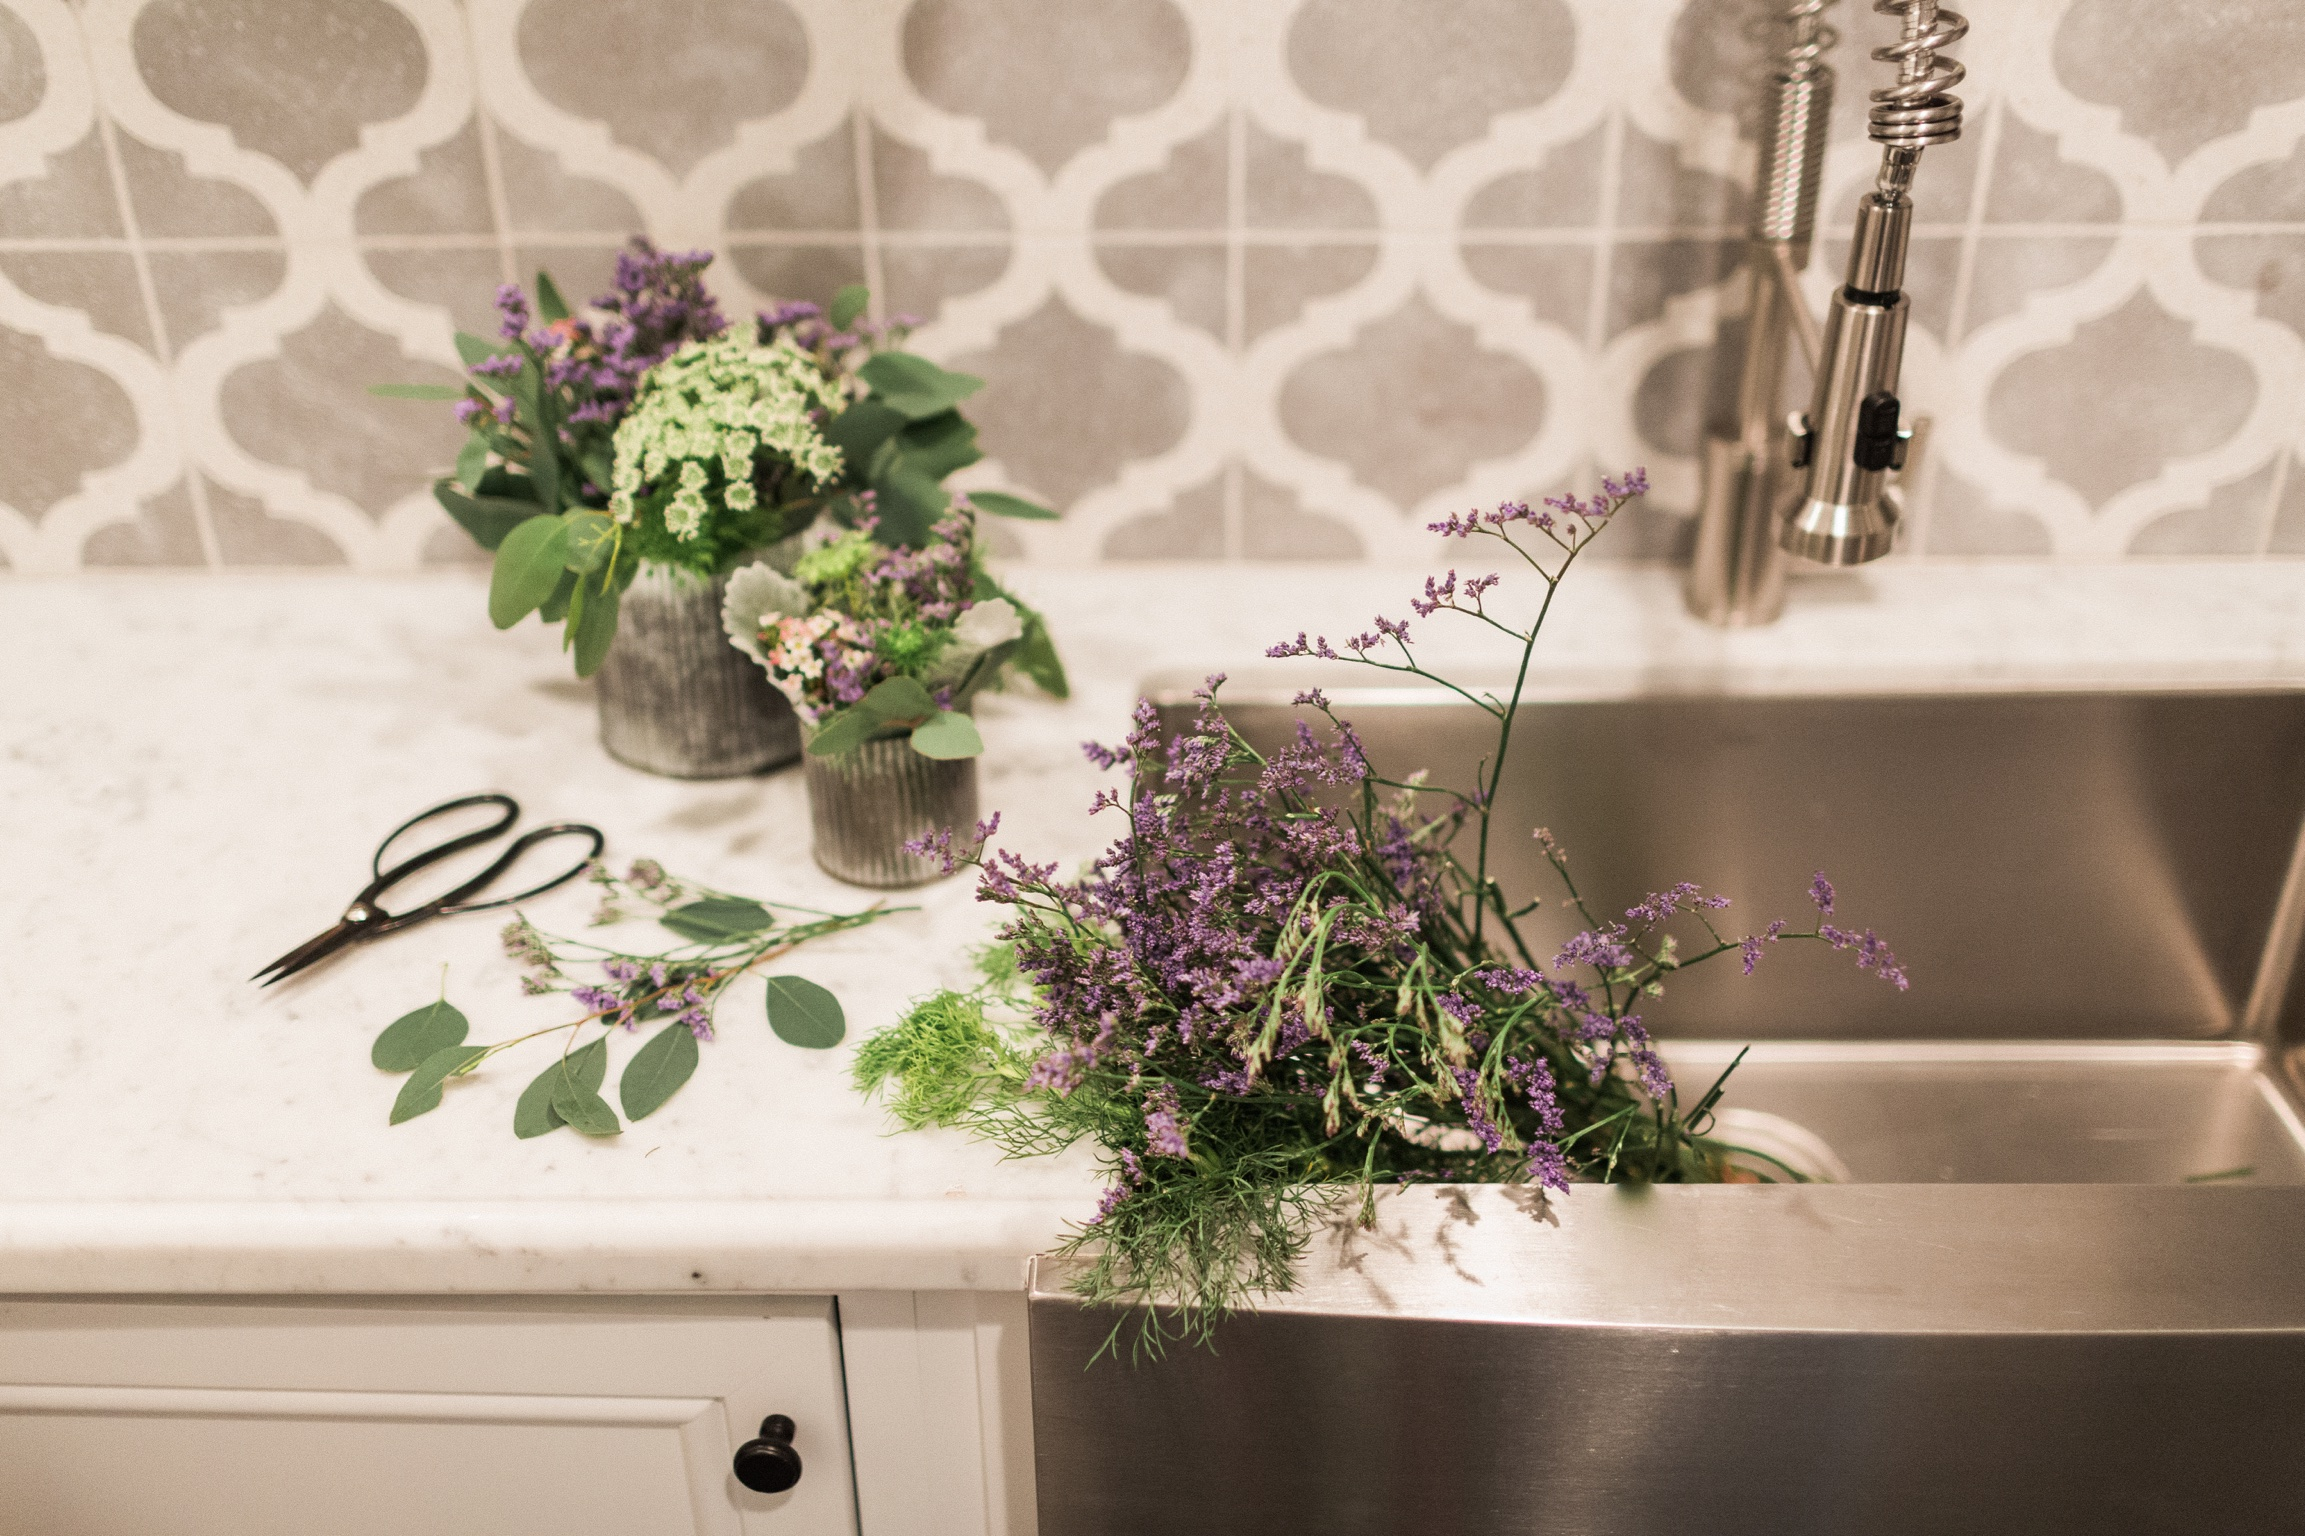 Floral Arranging Tips: My 7 Best Flower Hacks